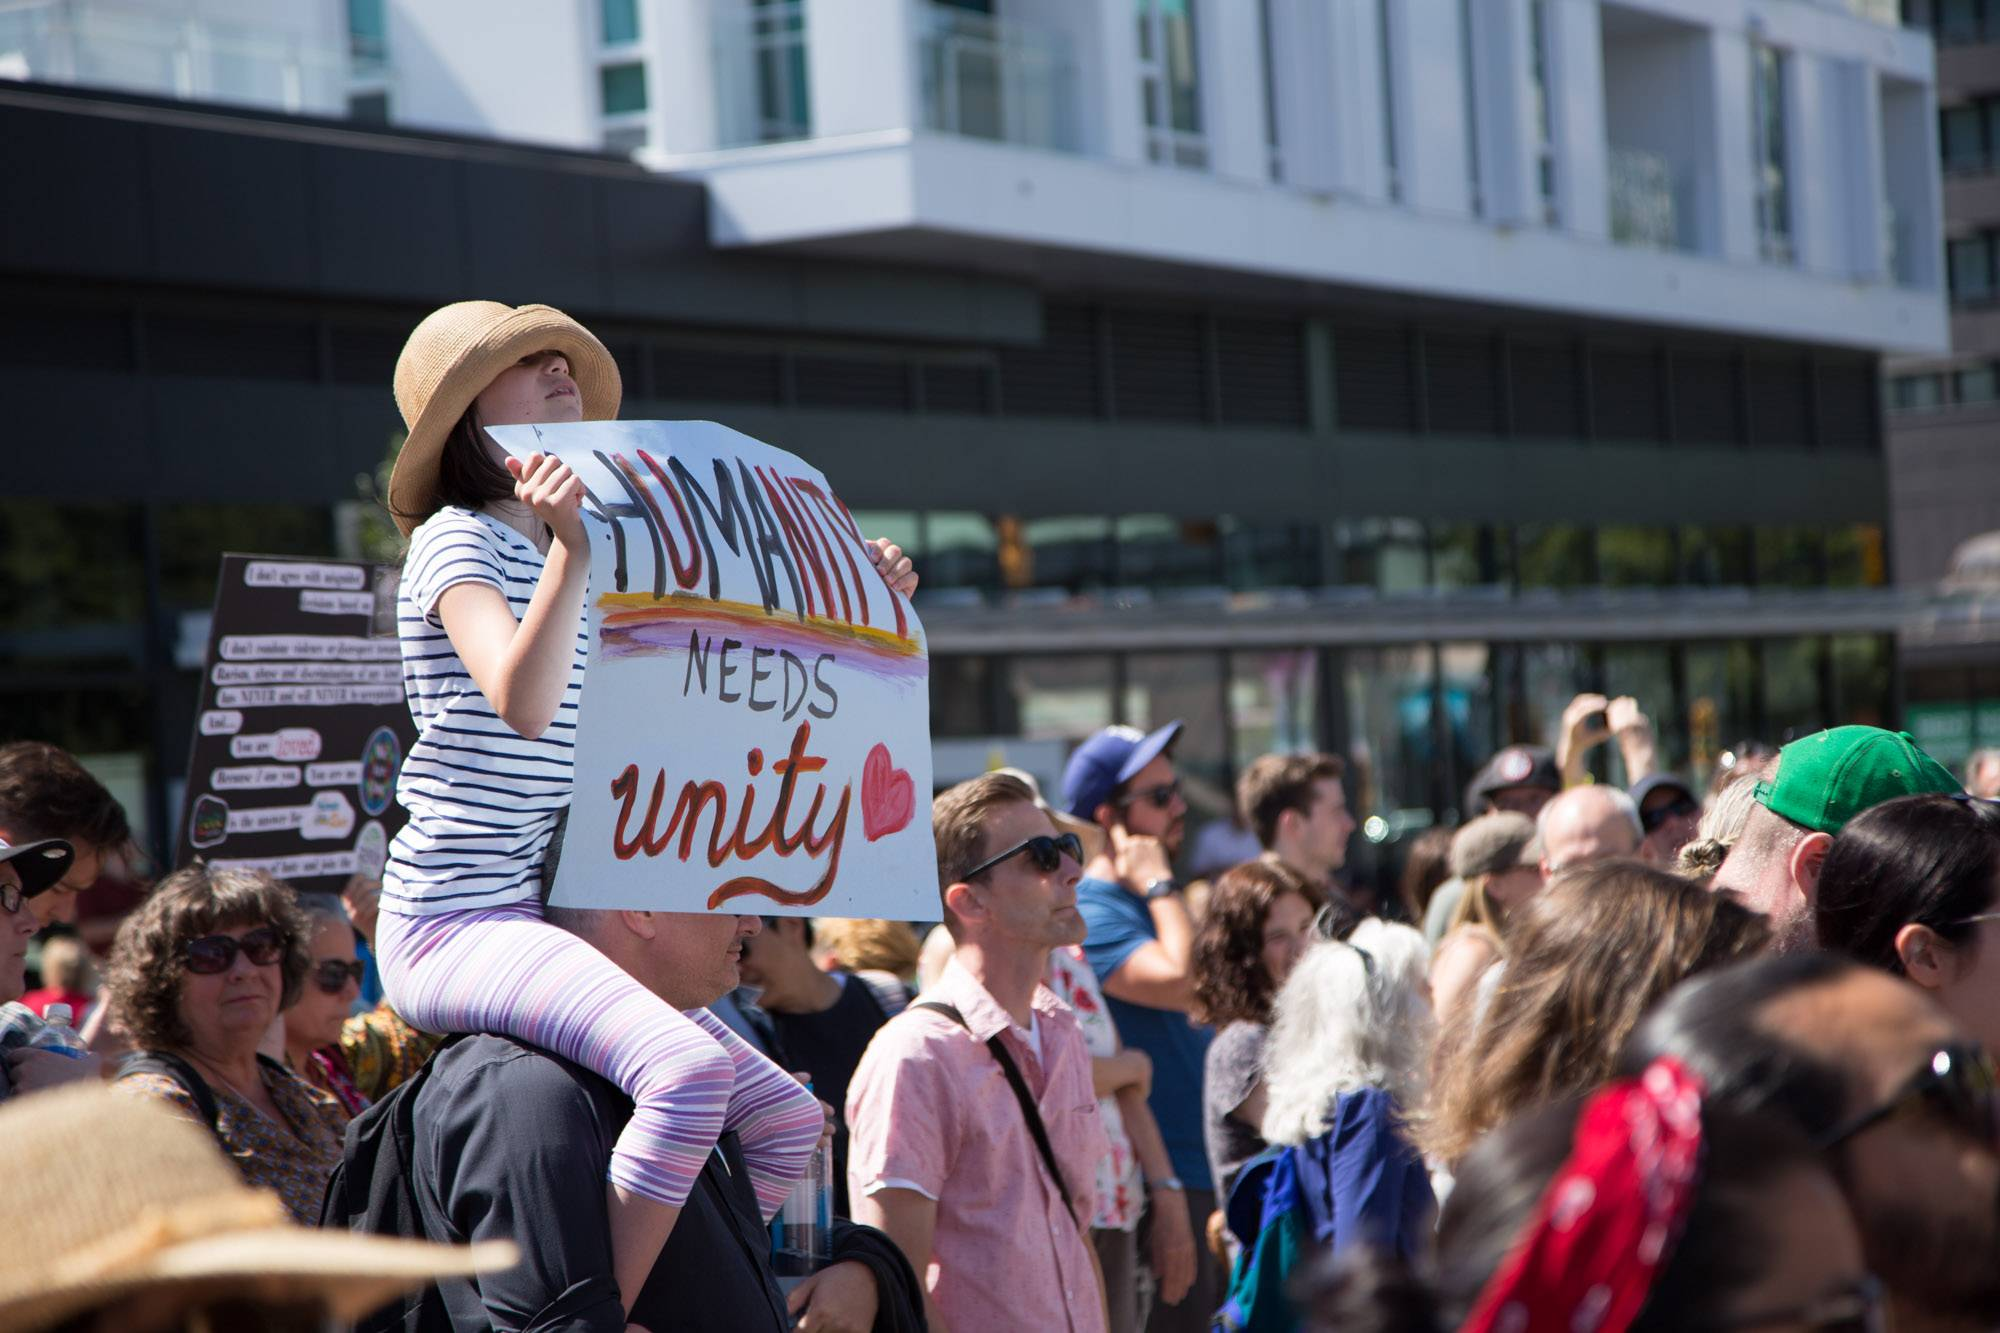 Protest - Oppose the Racists in Metro Vancouver at City Hall, Vancouver, Aug 19 2017. Kirk Chantraine photo.